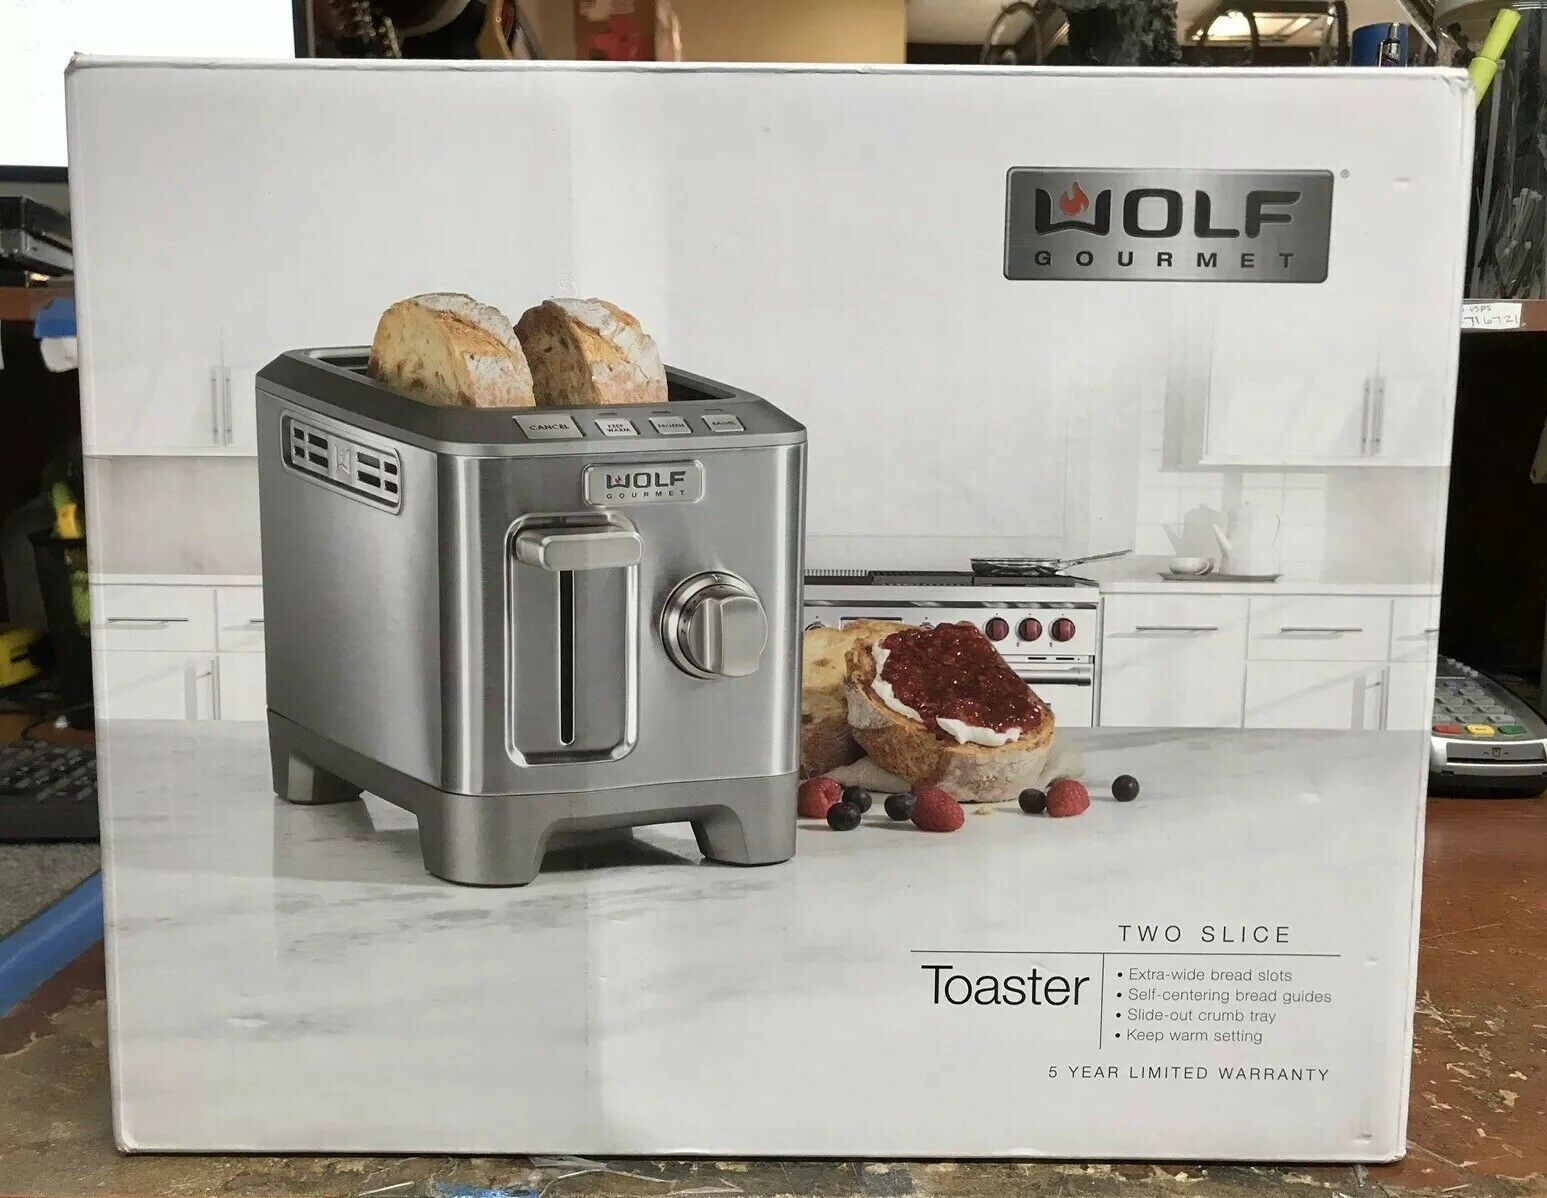 WOLF GOURMET TWO SLICE TOASTER NEW Toasters Ideas of